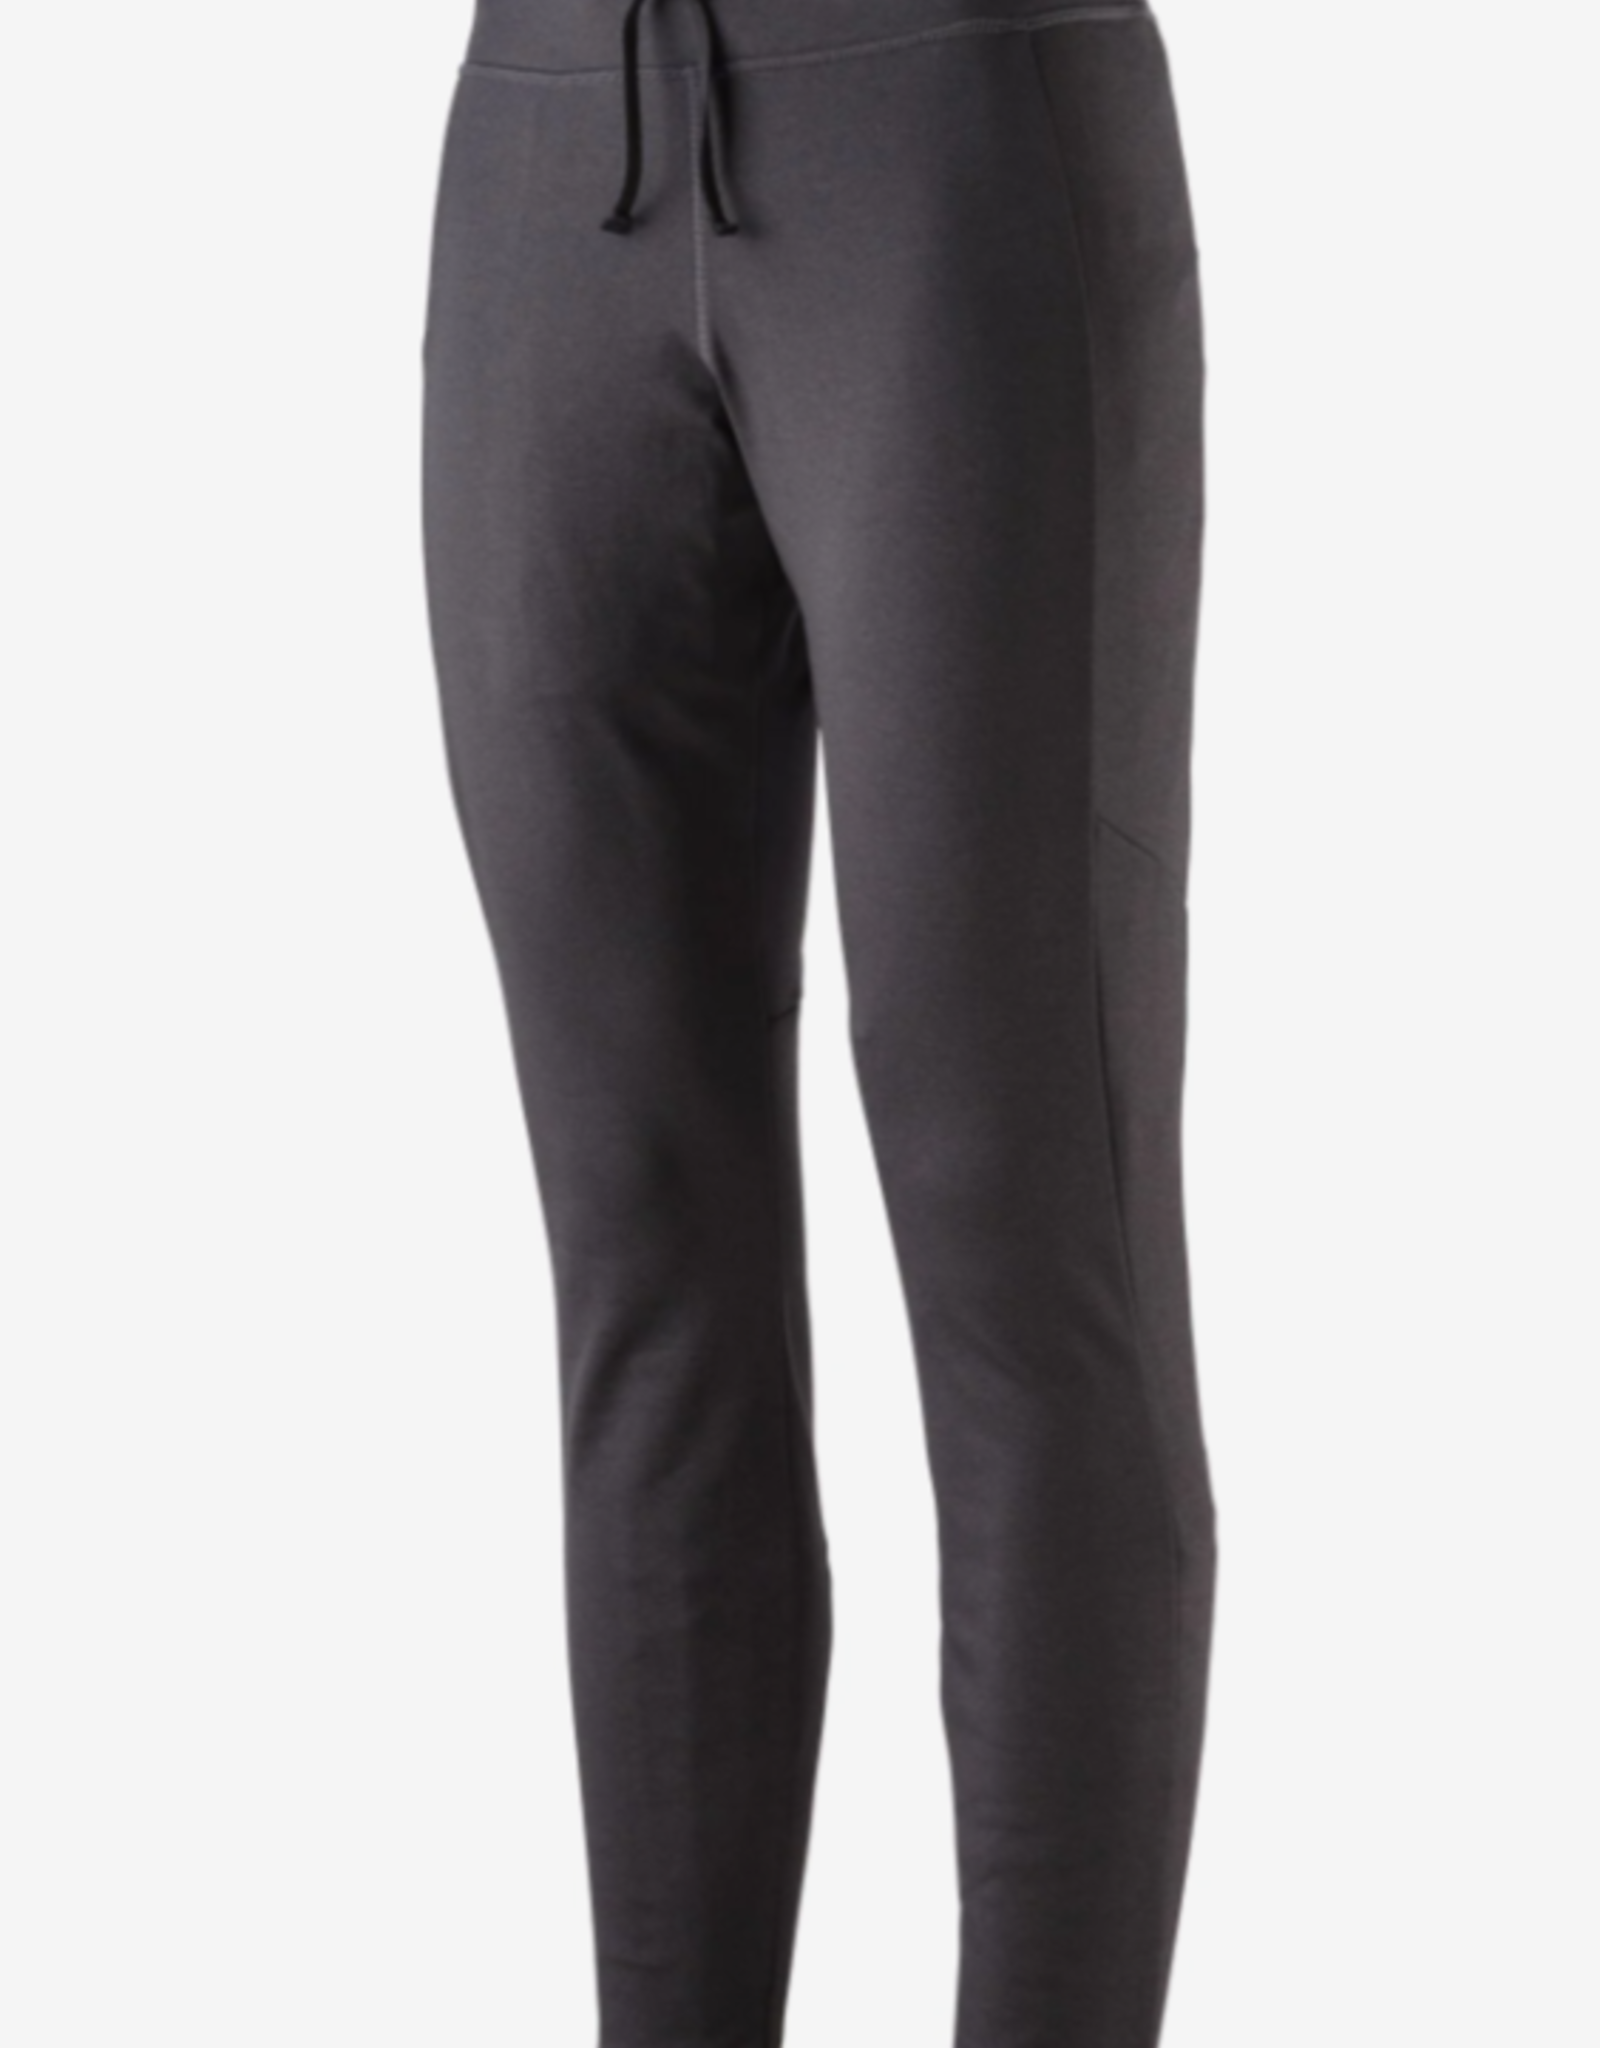 patagonia m's Daily Bottoms  (40540)